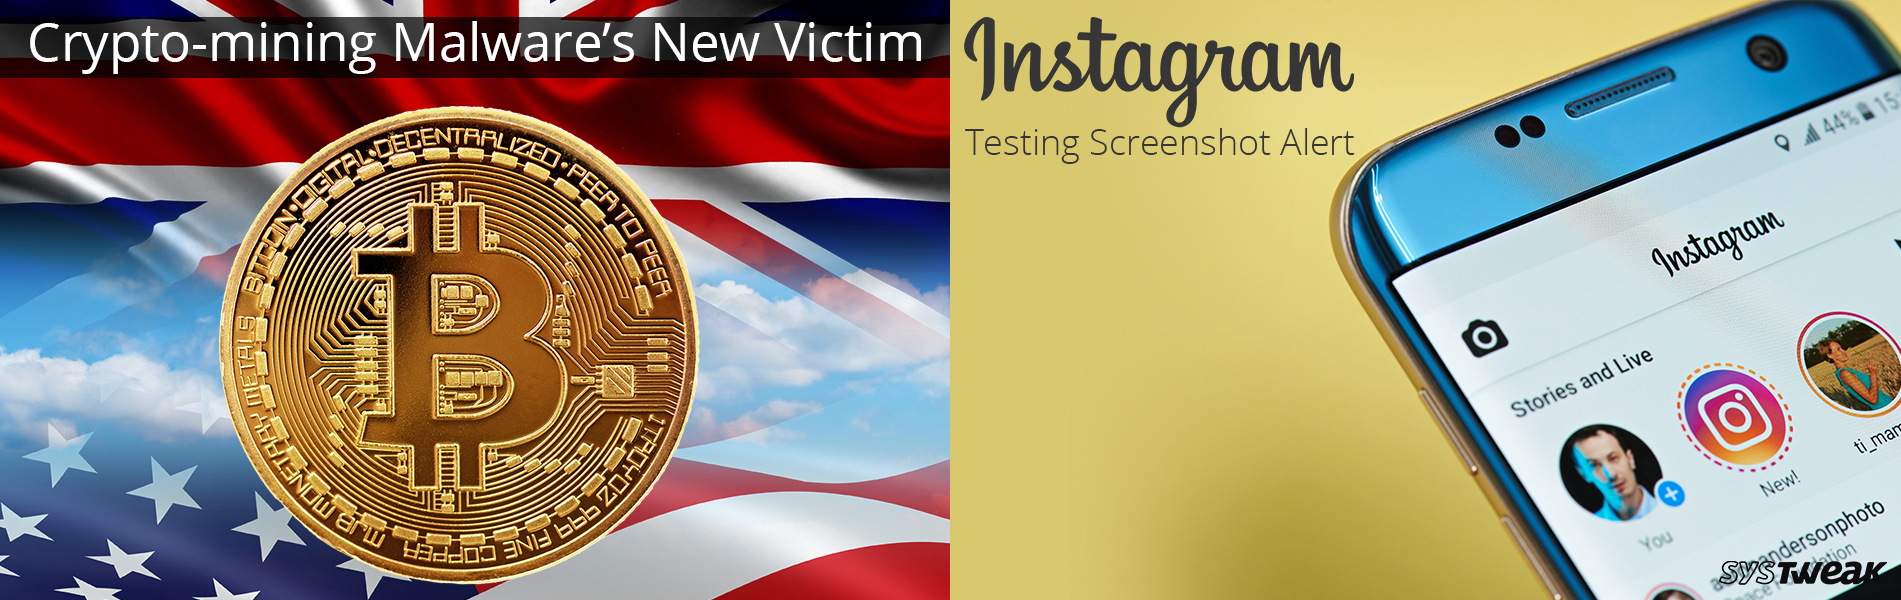 Newsletter: US & UK Govt Websites Infected & Instagram: Screenshot Alerts For Stories